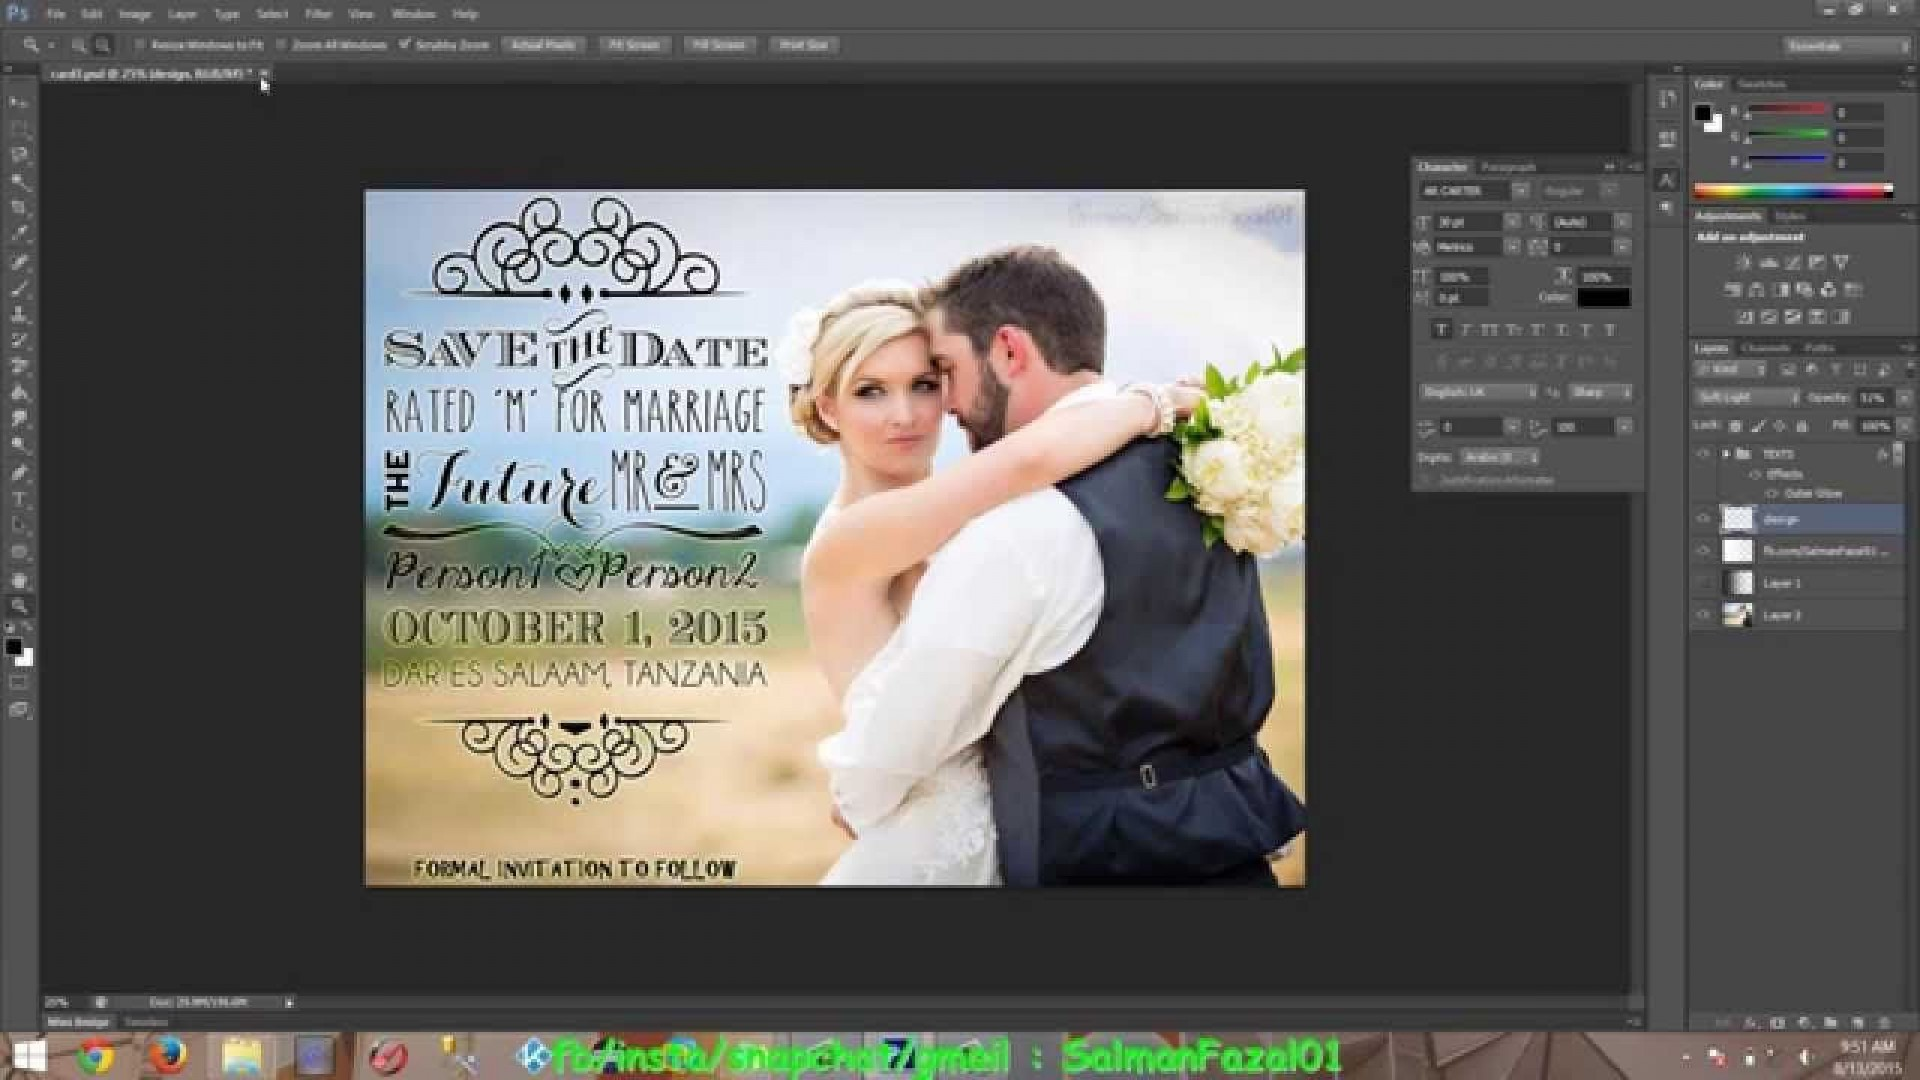 004 Awesome Save The Date Template Photoshop Inspiration  Adobe Card1920